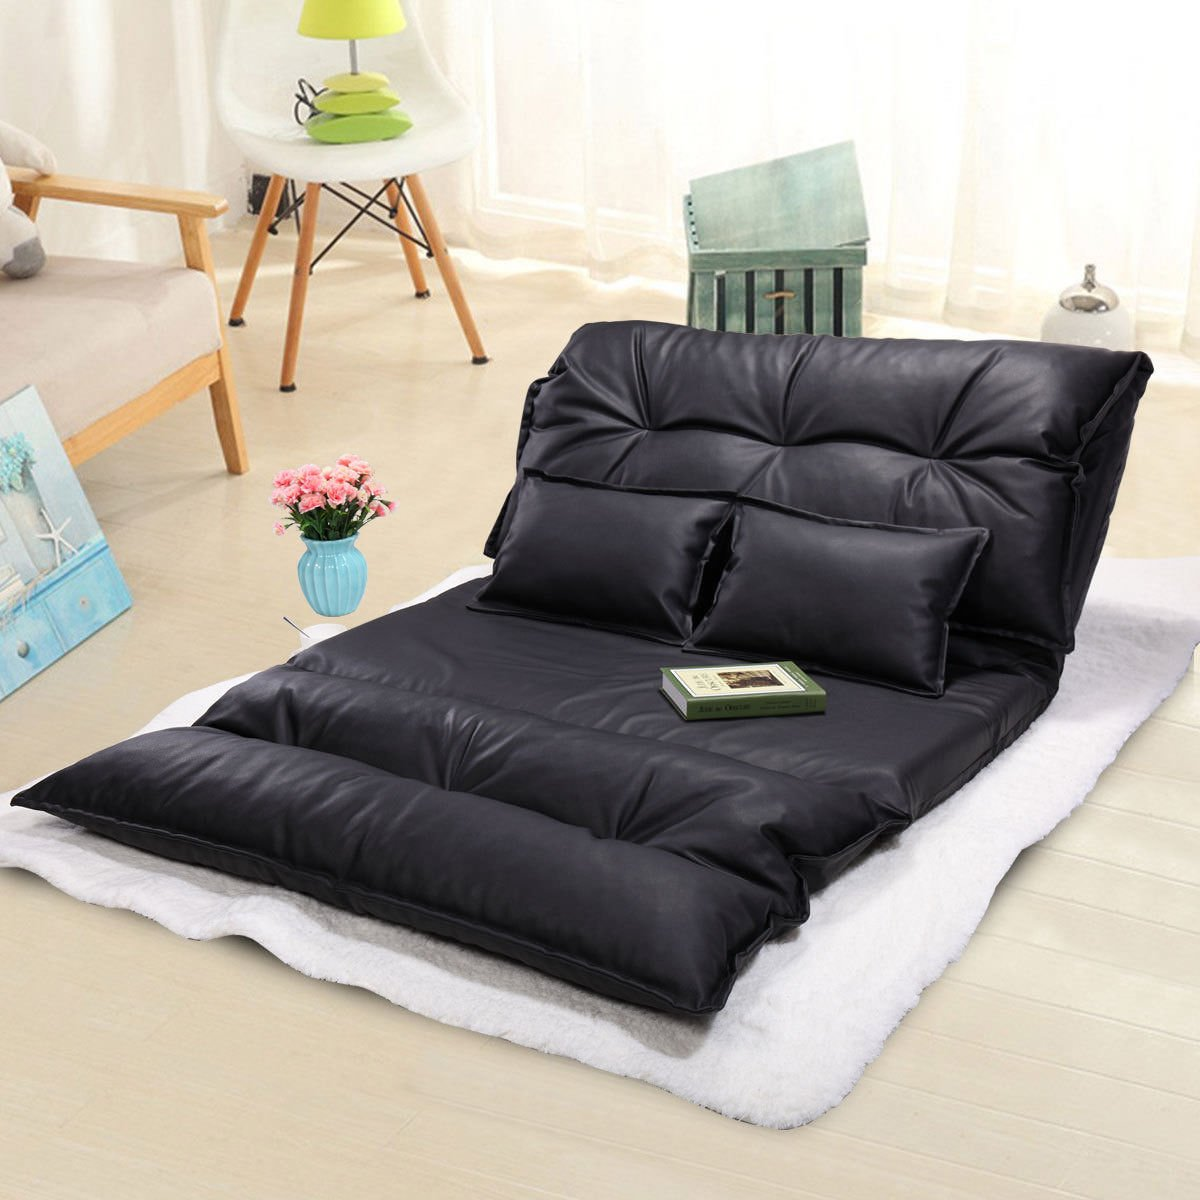 LAZYMOON Black PU Leather Foldable Floor Chair Video Gaming Lounge Sofa Bed Lazy Couch w/ 2 Pillow